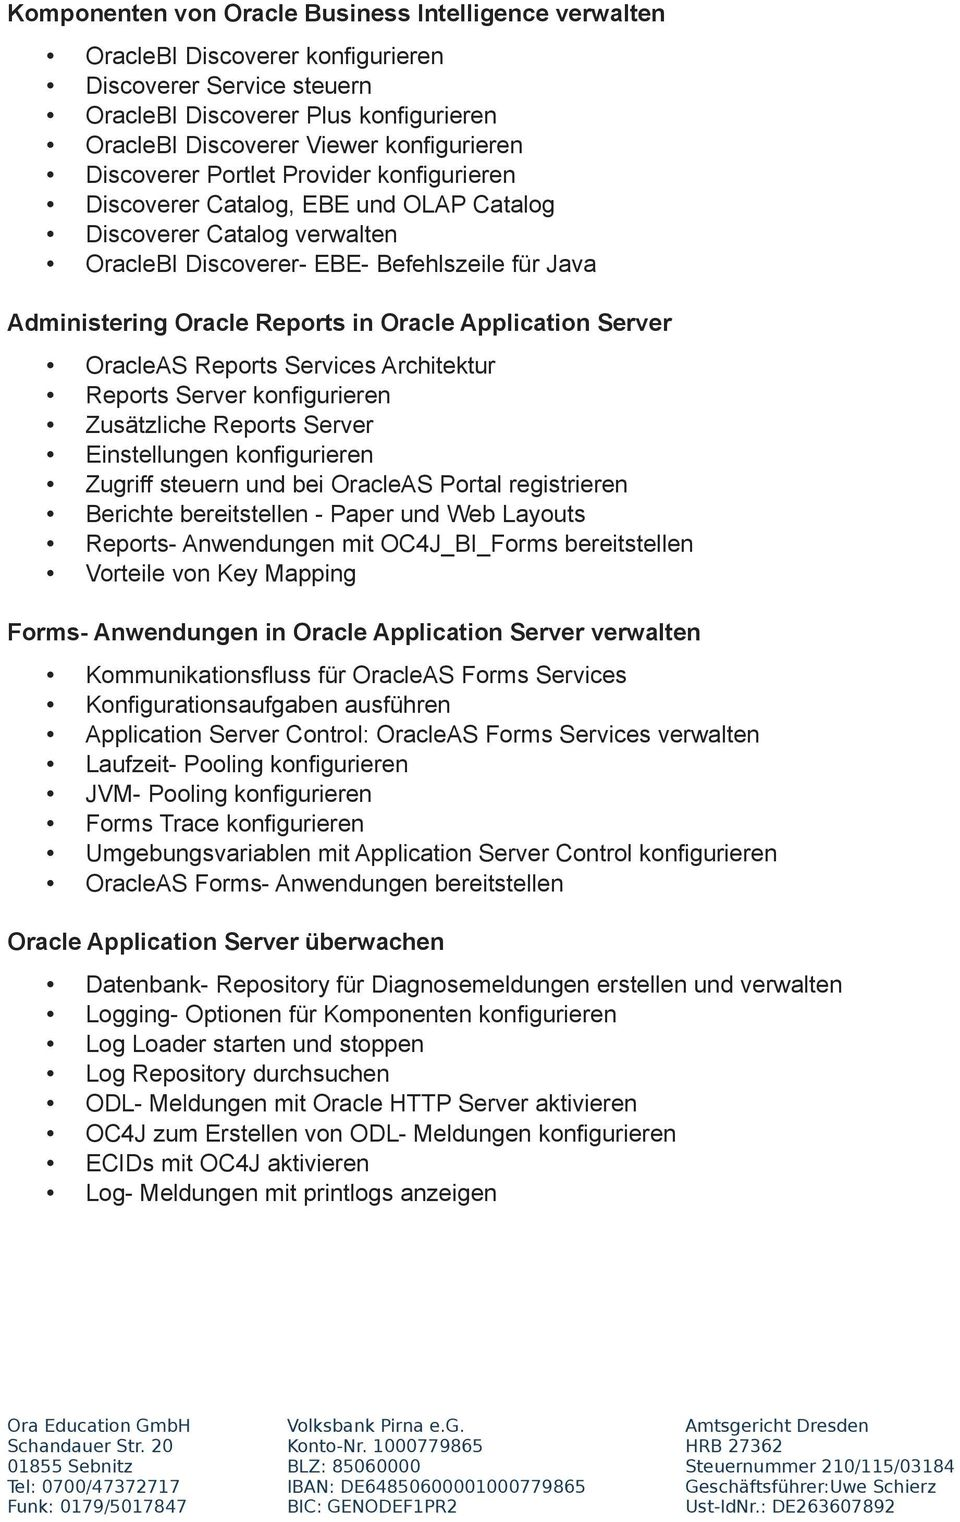 Application Server OracleAS Reports Services Architektur Reports Server konfigurieren Zusätzliche Reports Server Einstellungen konfigurieren Zugriff steuern und bei OracleAS Portal registrieren